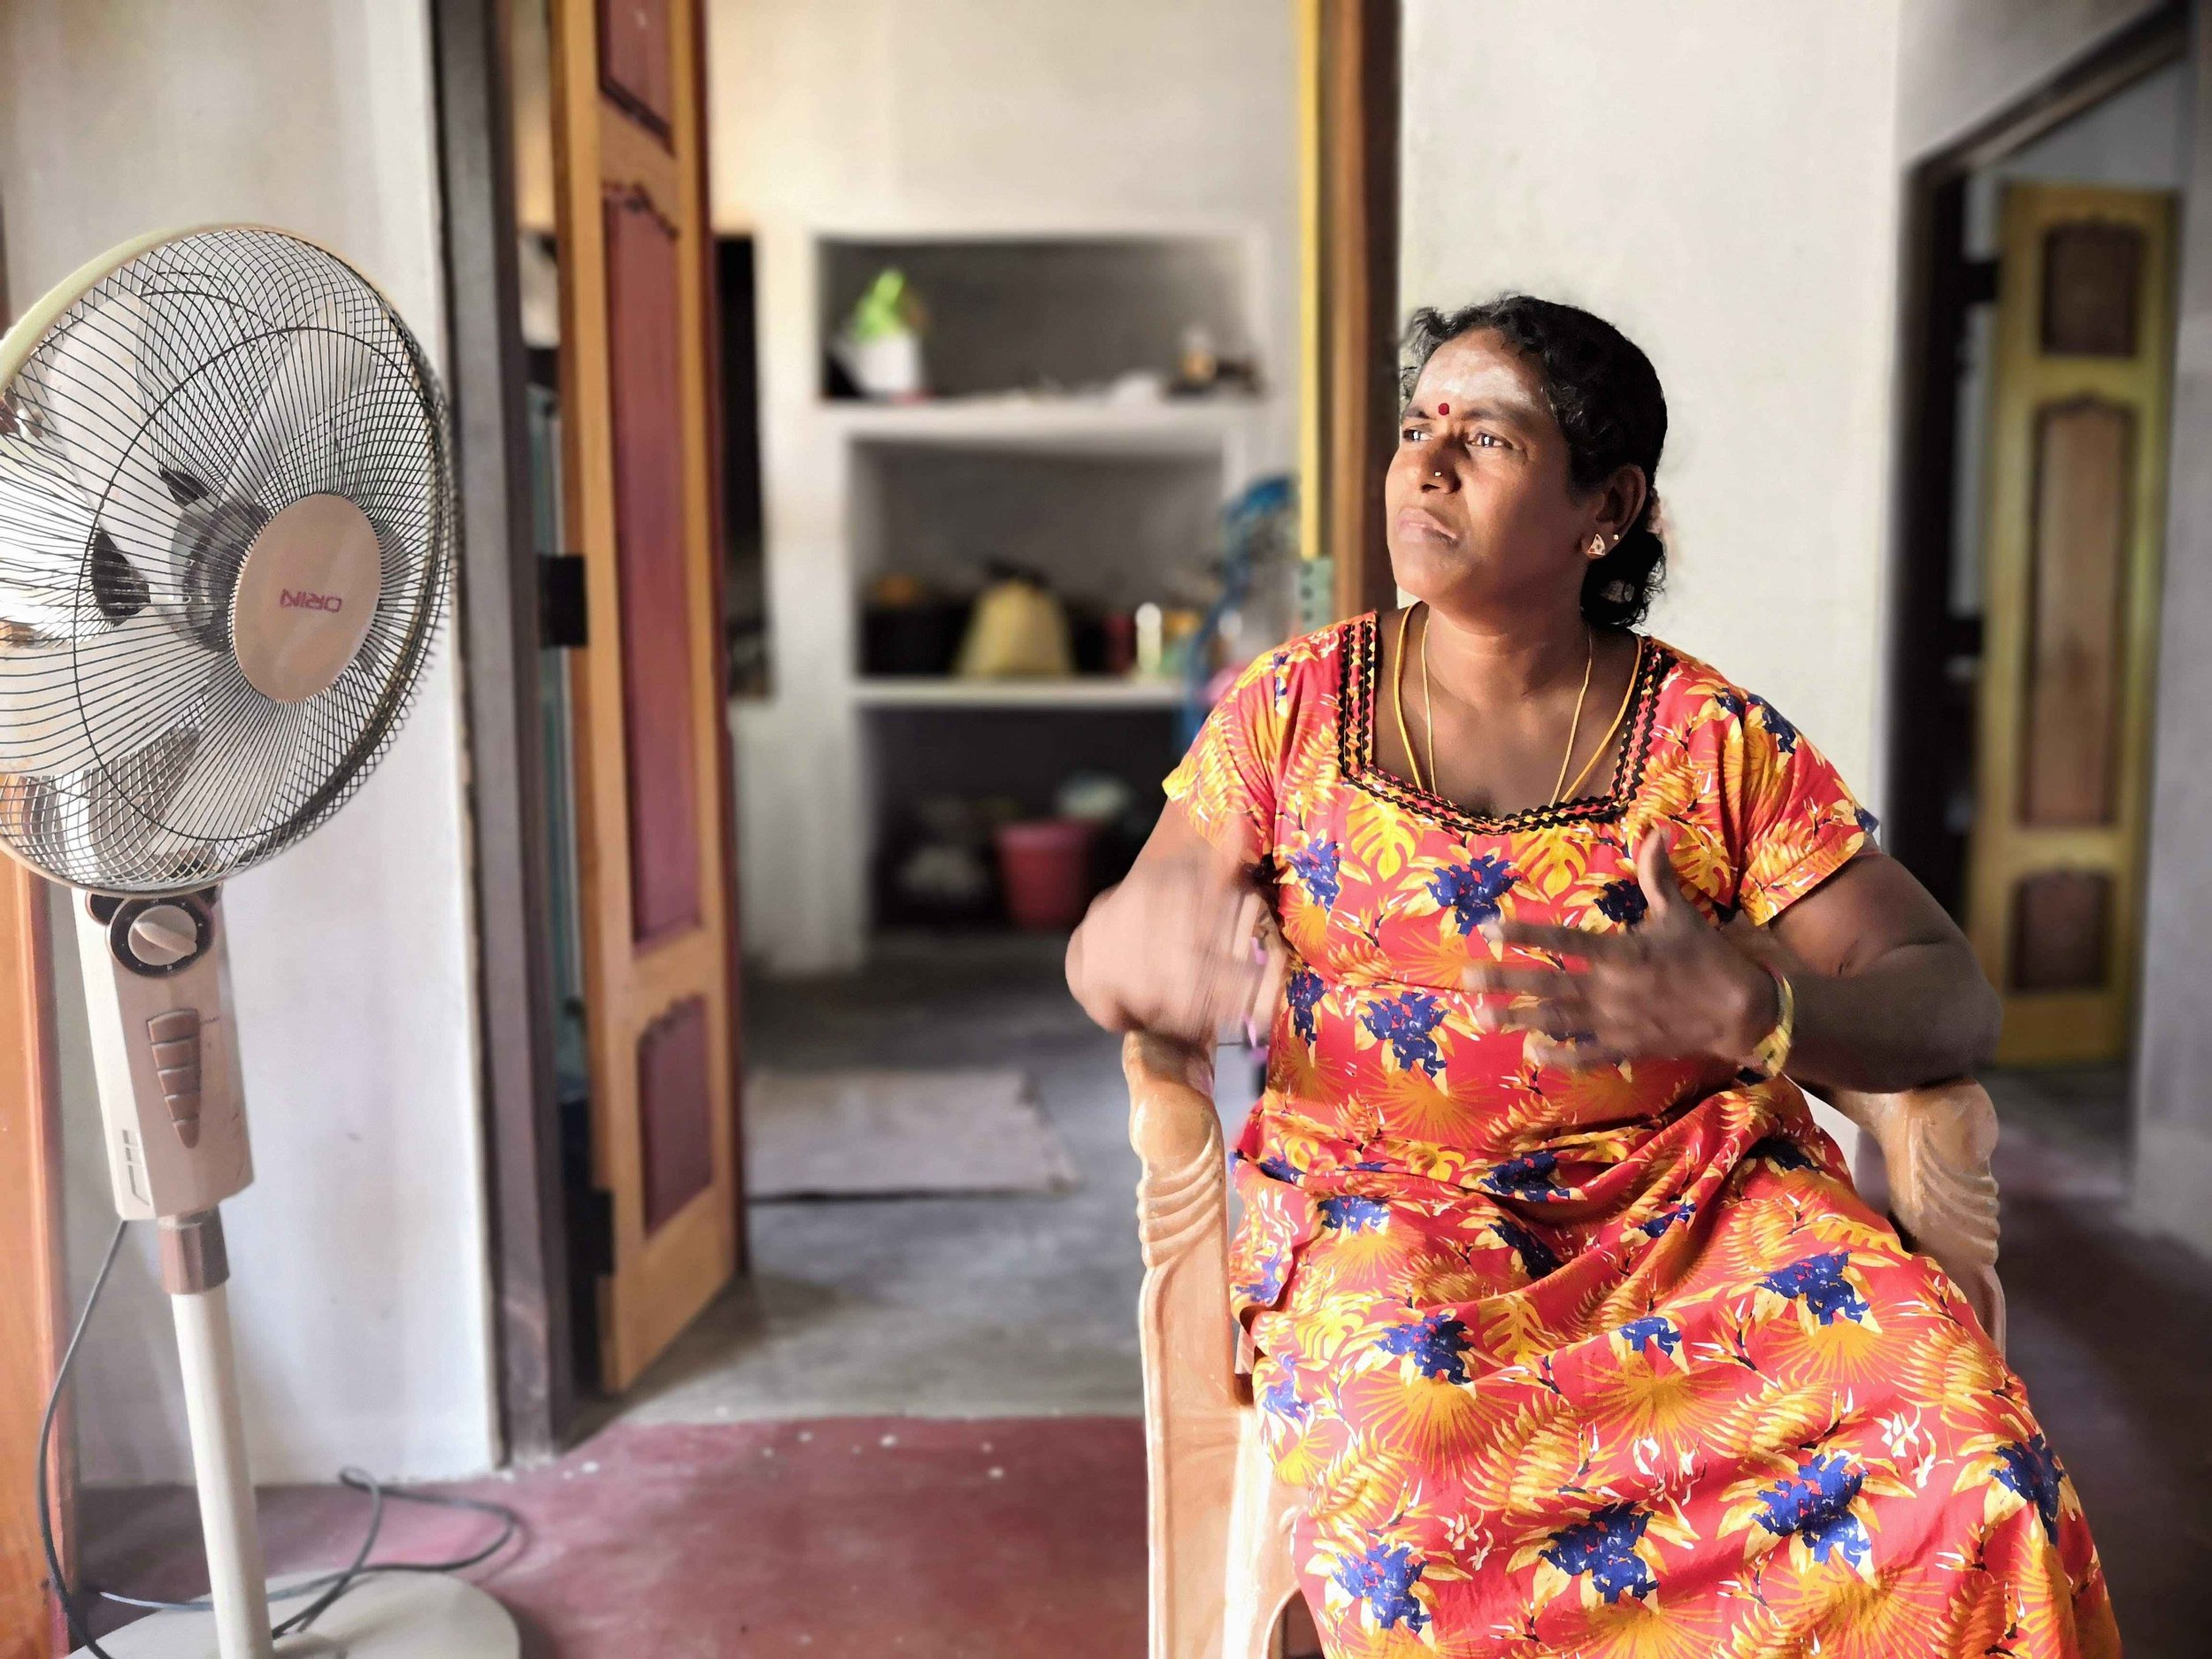 Vasuki, a war widow and amputee, at home in Point Pedro, Sri Lanka